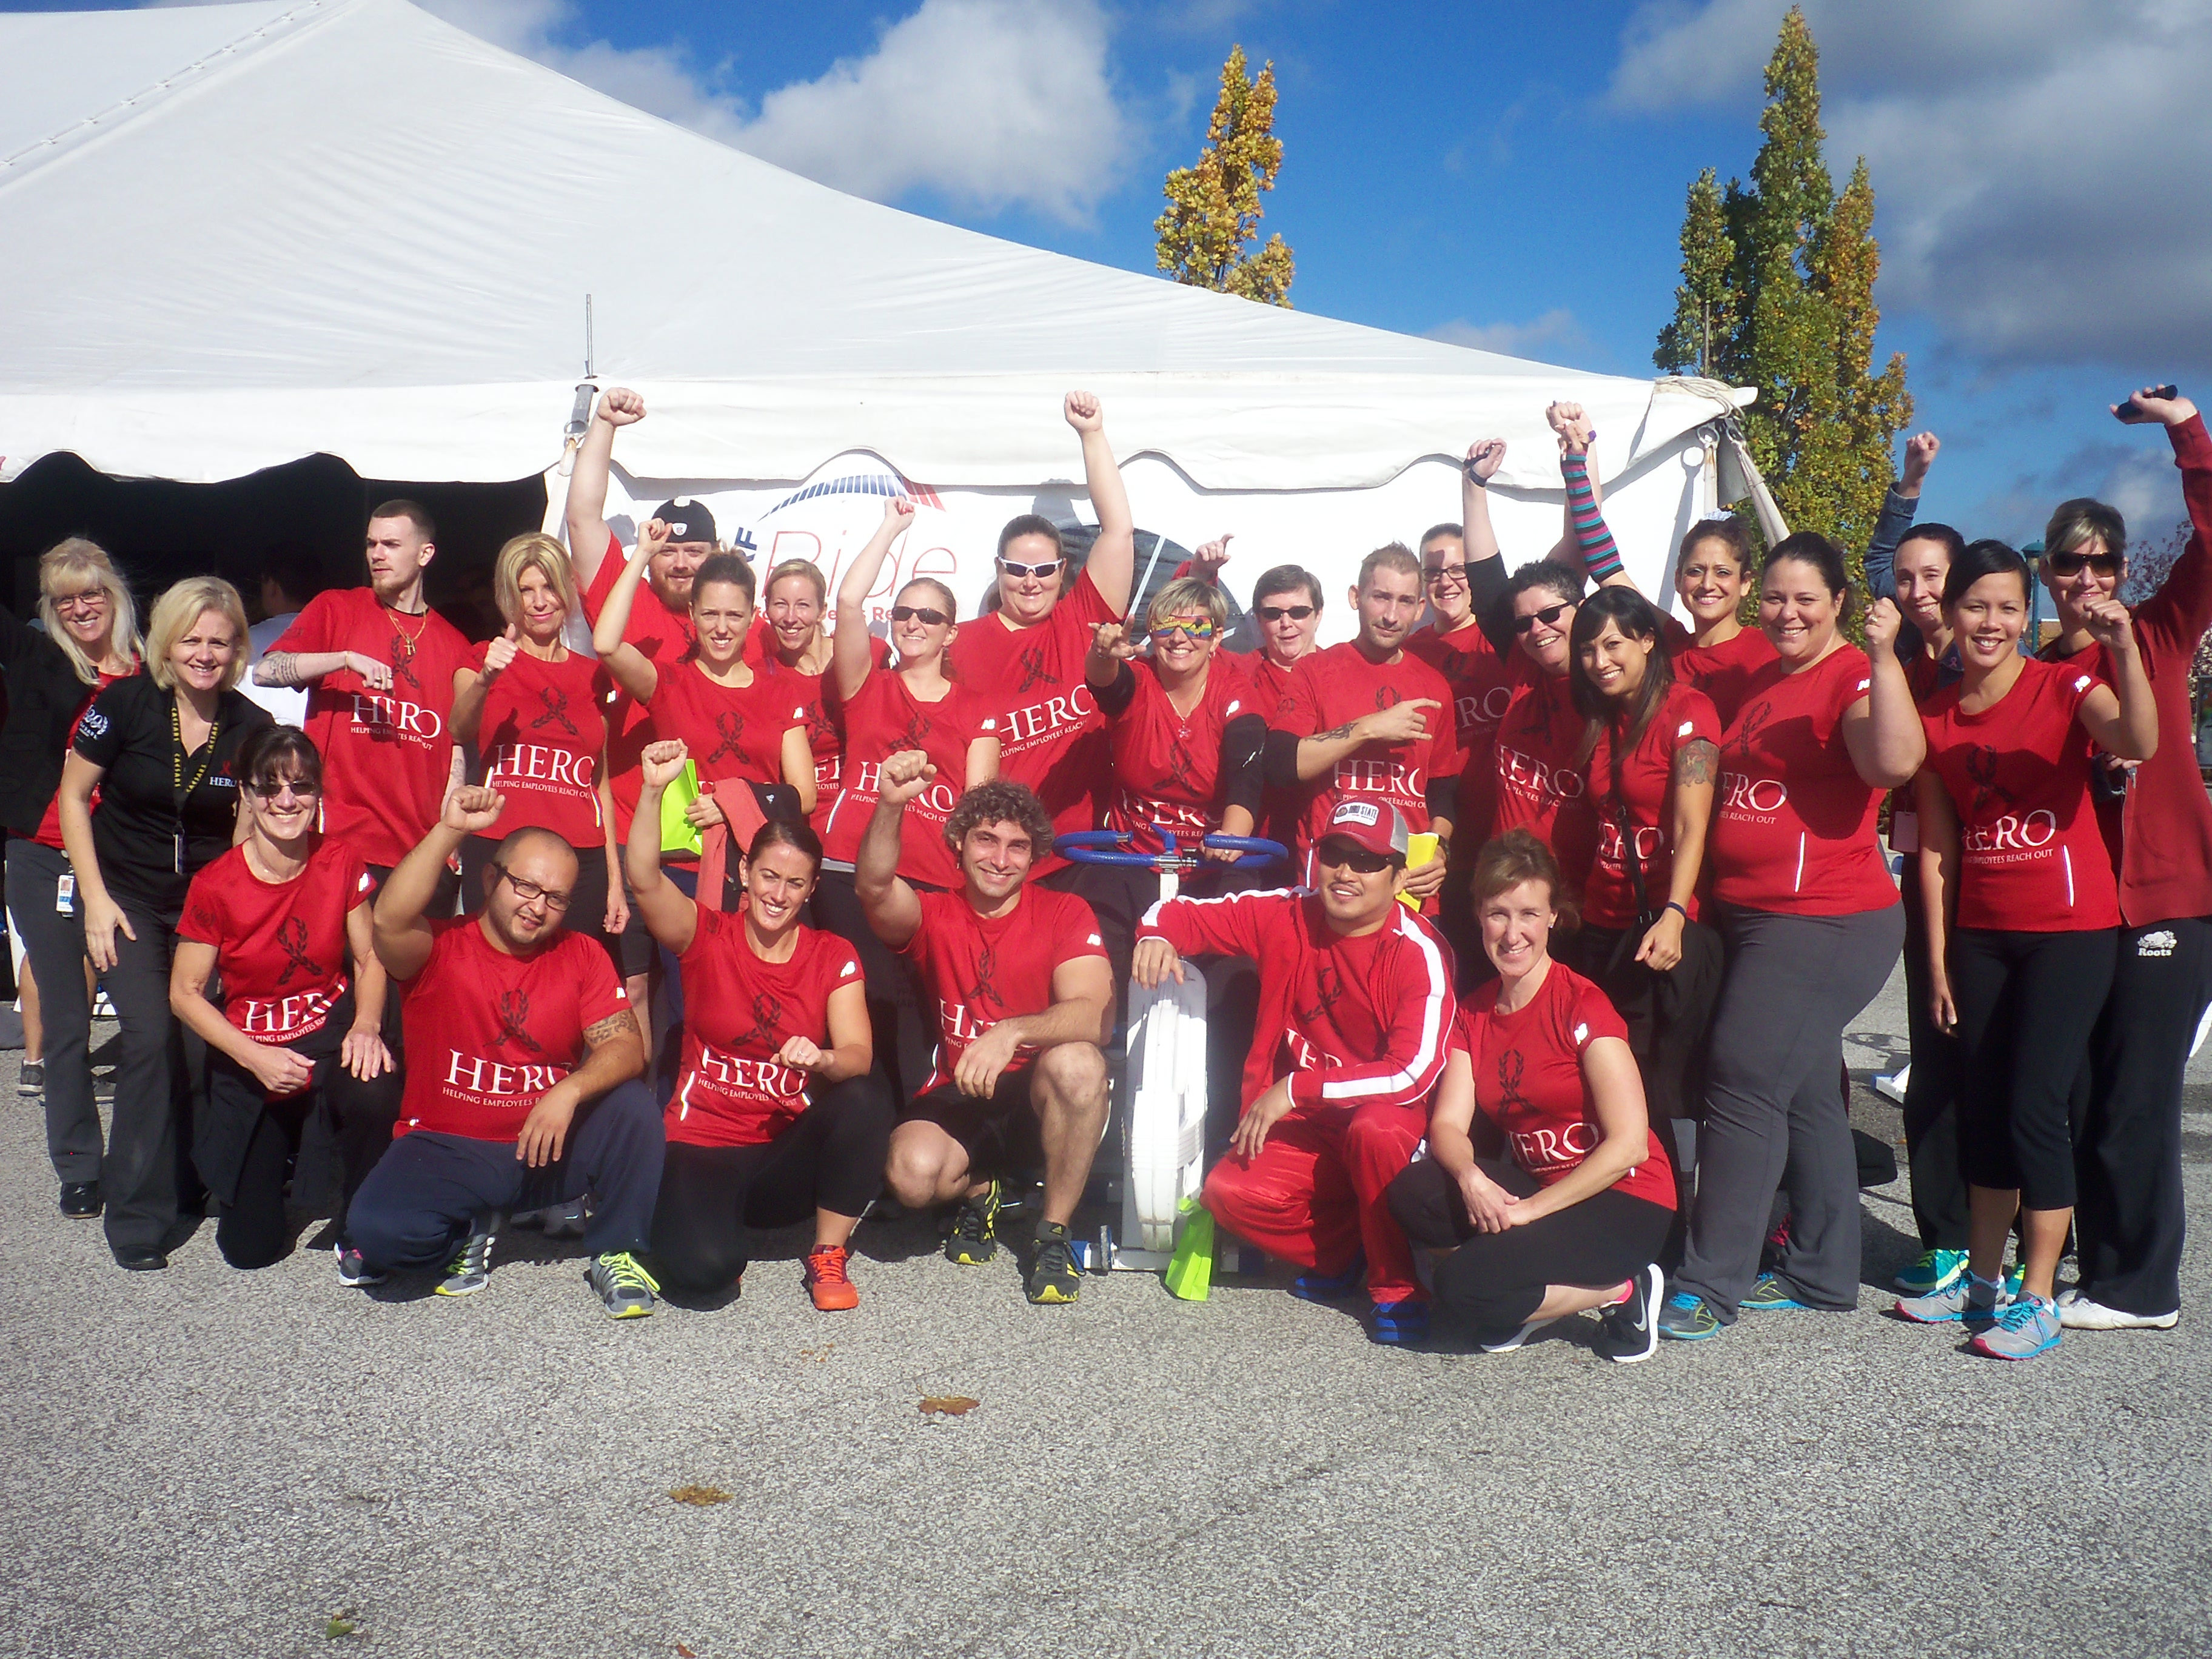 Riders take part in the 2014 JDRF Ride in Windsor on October 15, 2014. (Photo courtesy Nicole Cozad)